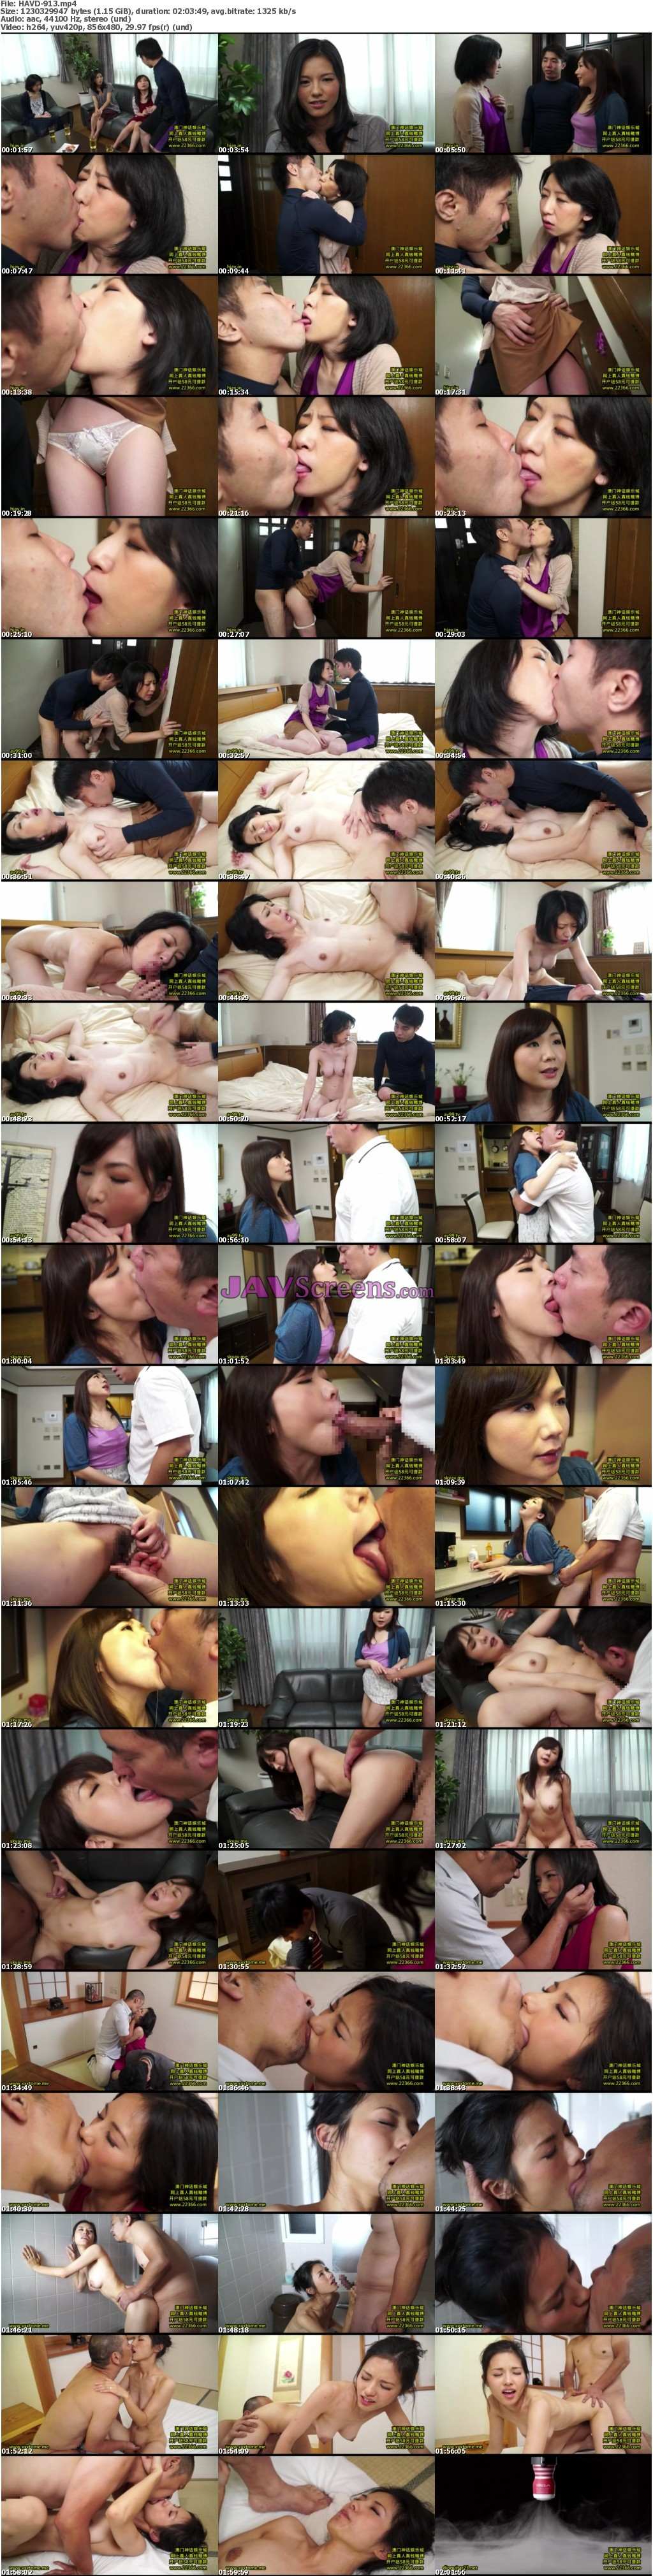 HAVD-913.jpg - JAV Screenshot